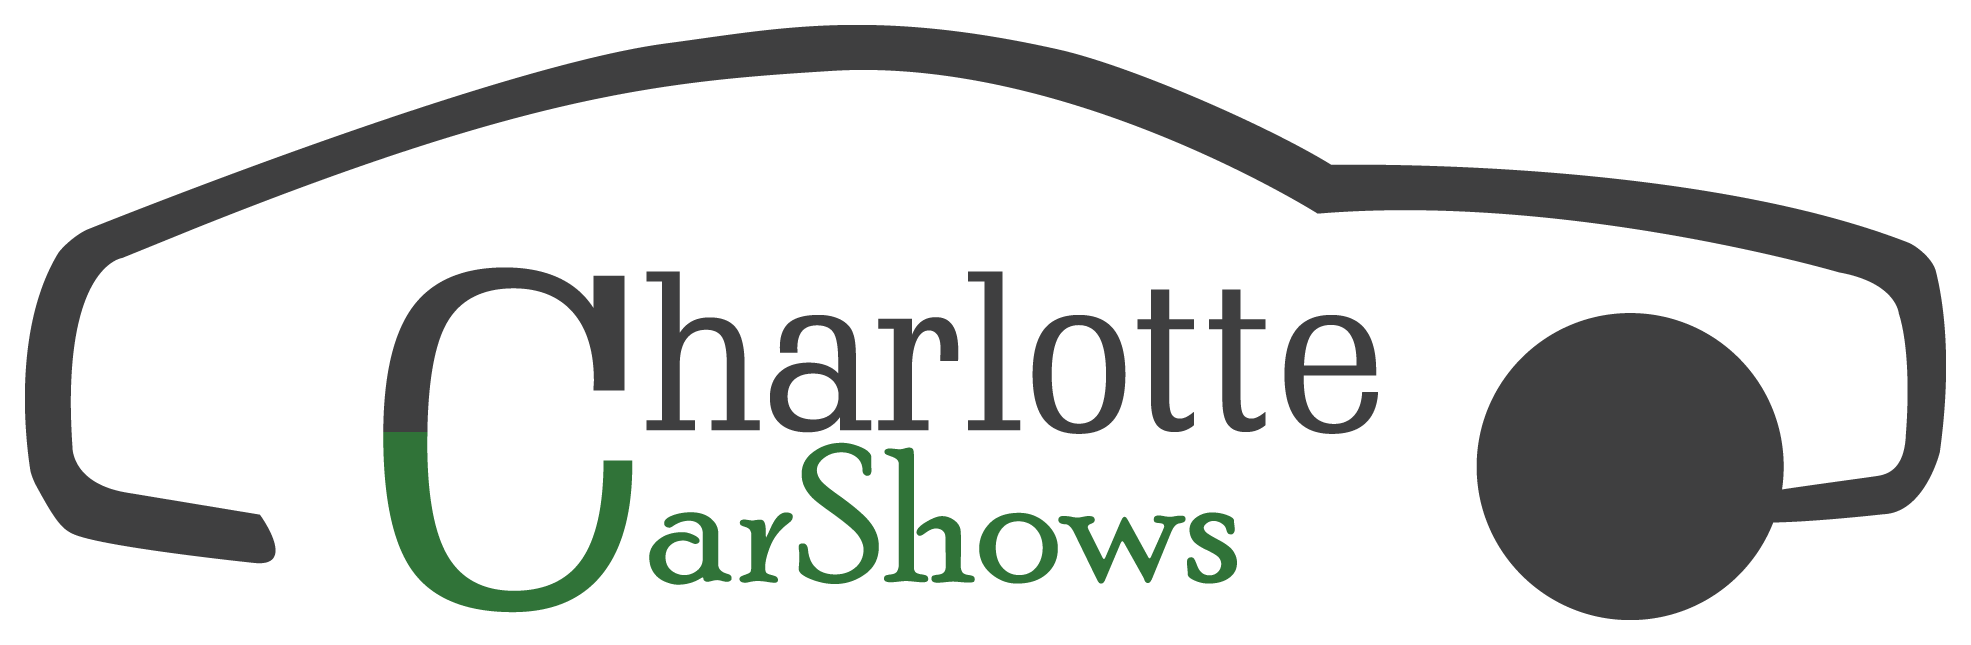 Charlotte Car Shows